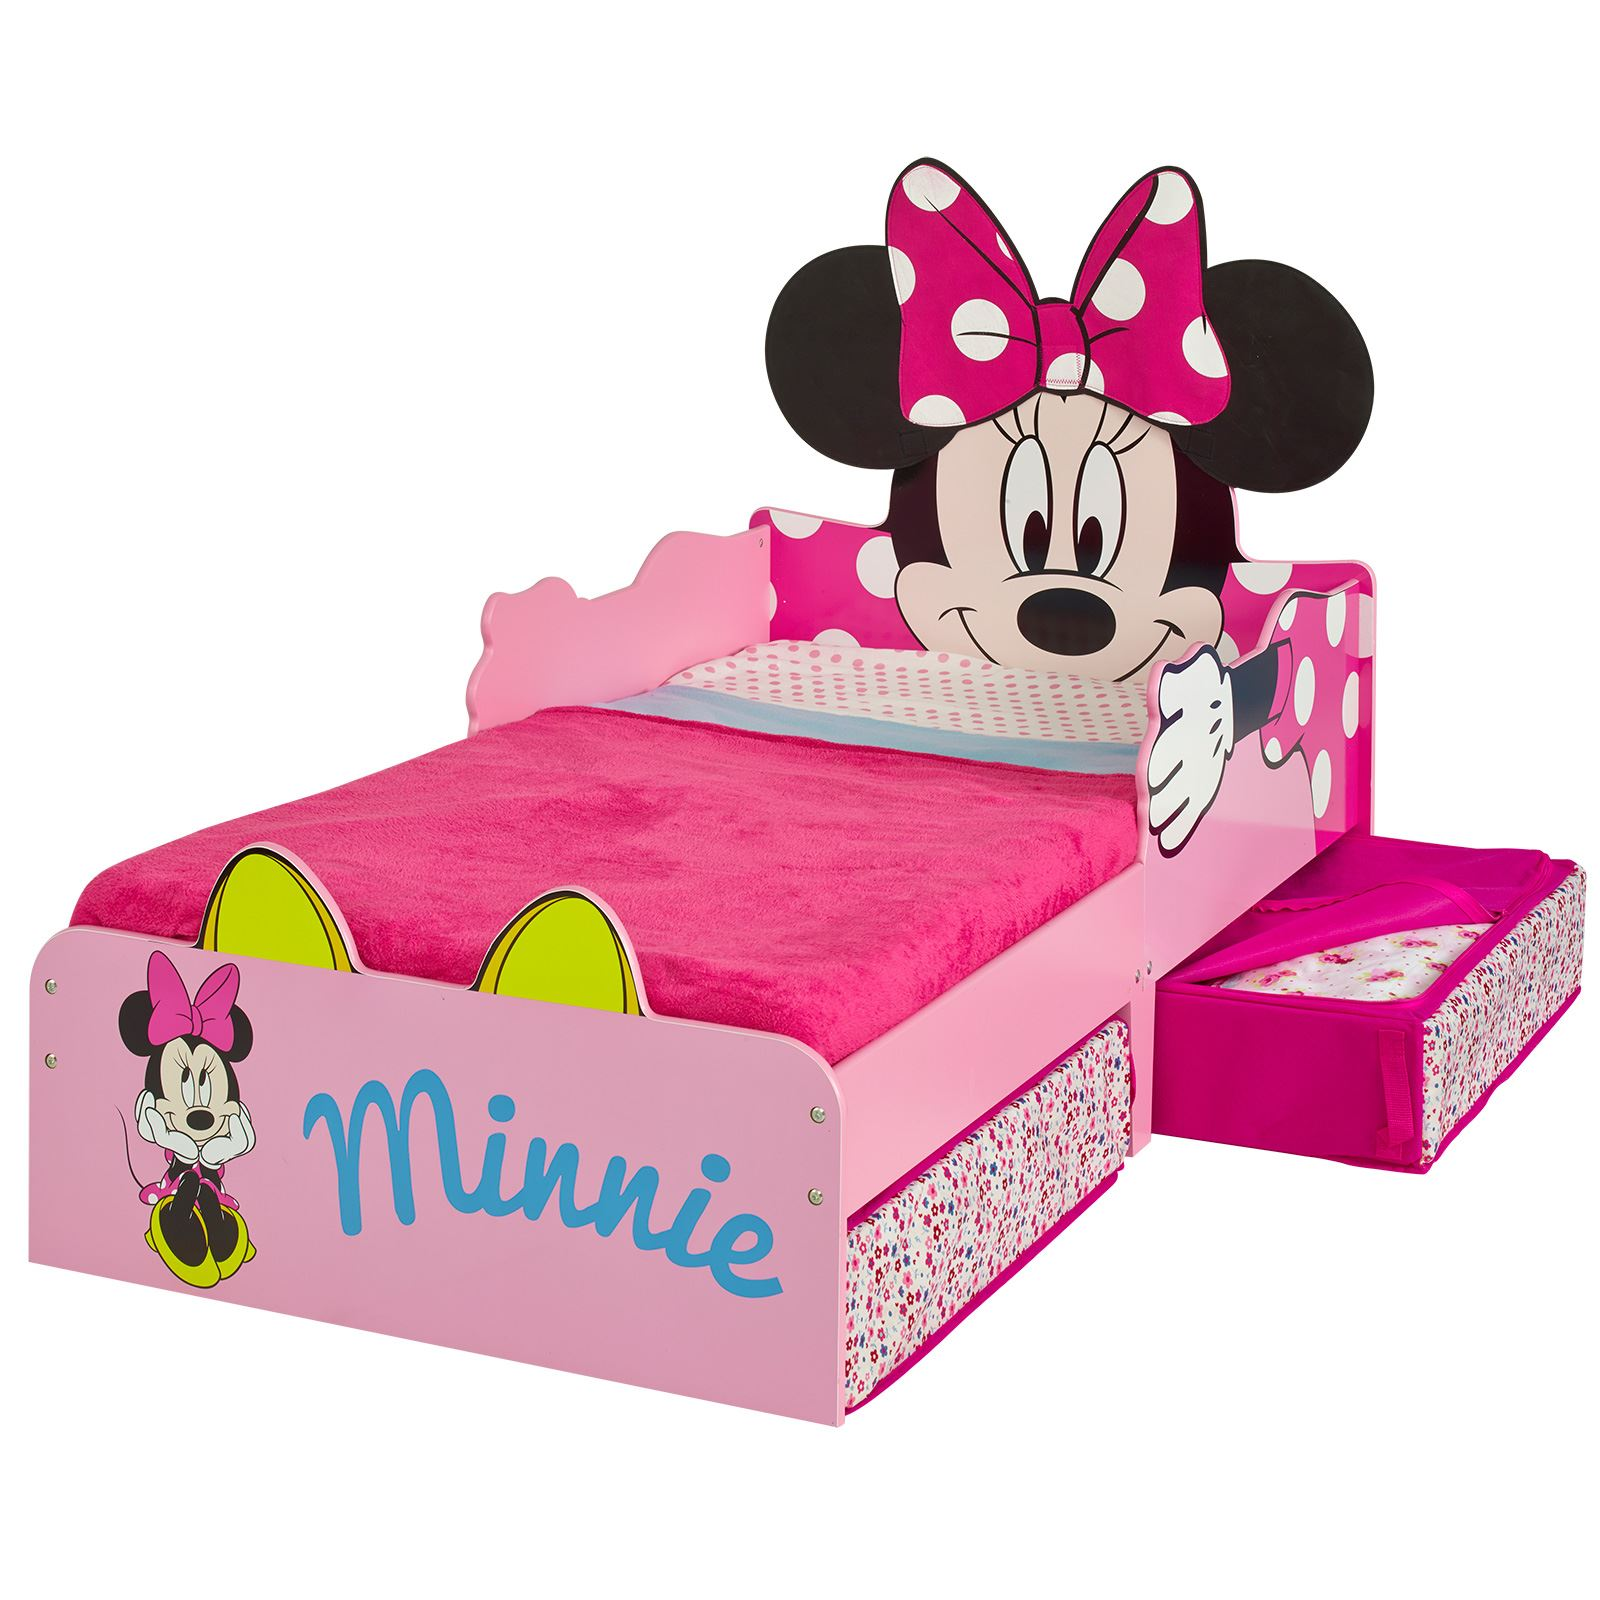 MINNIE MOUSE MDF TODDLER BED WITH STORAGE DELUXE